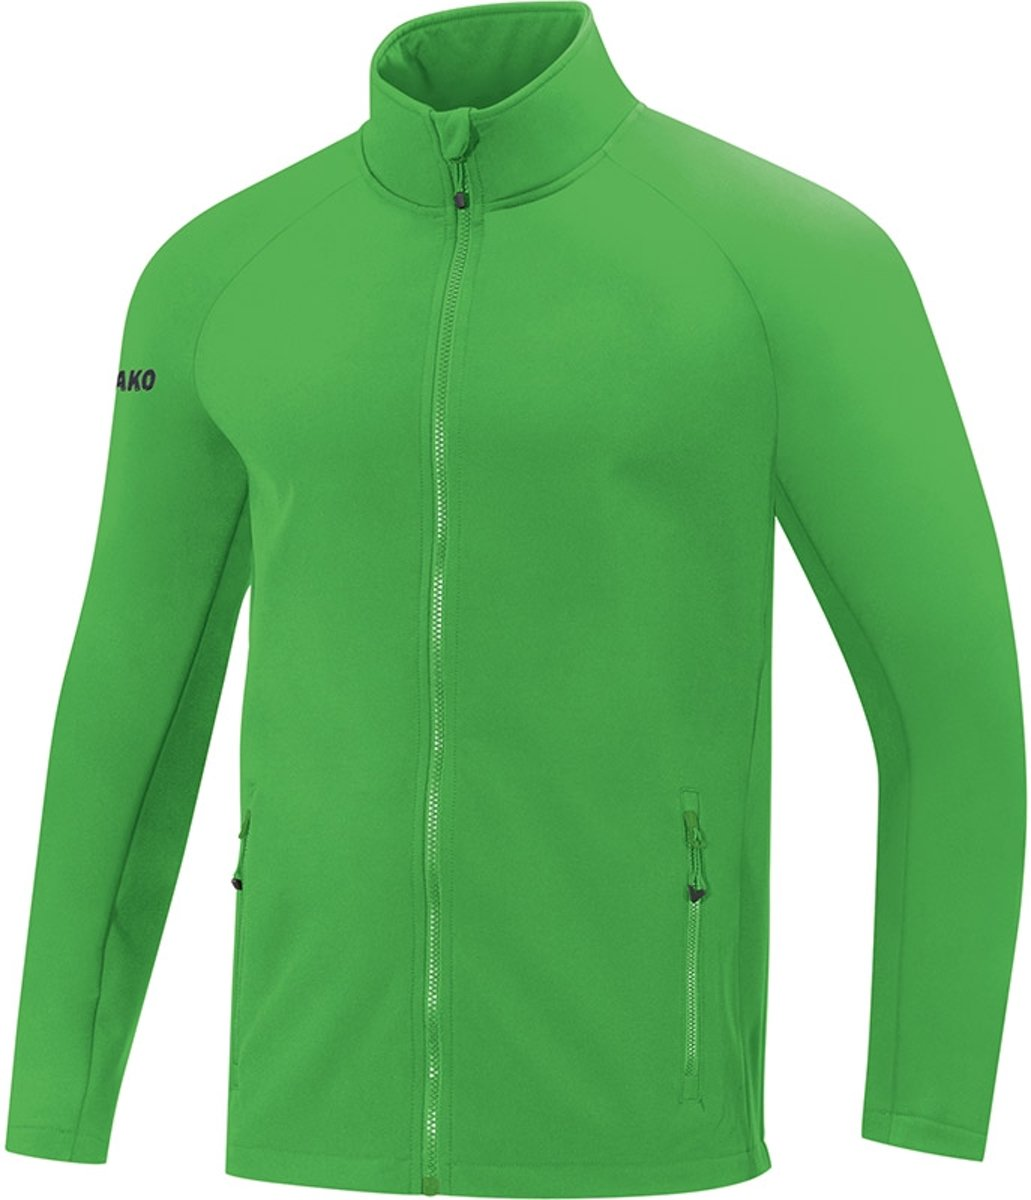 Jako Team Dames Softshell Jas - Softshelljassen  - groen - 40